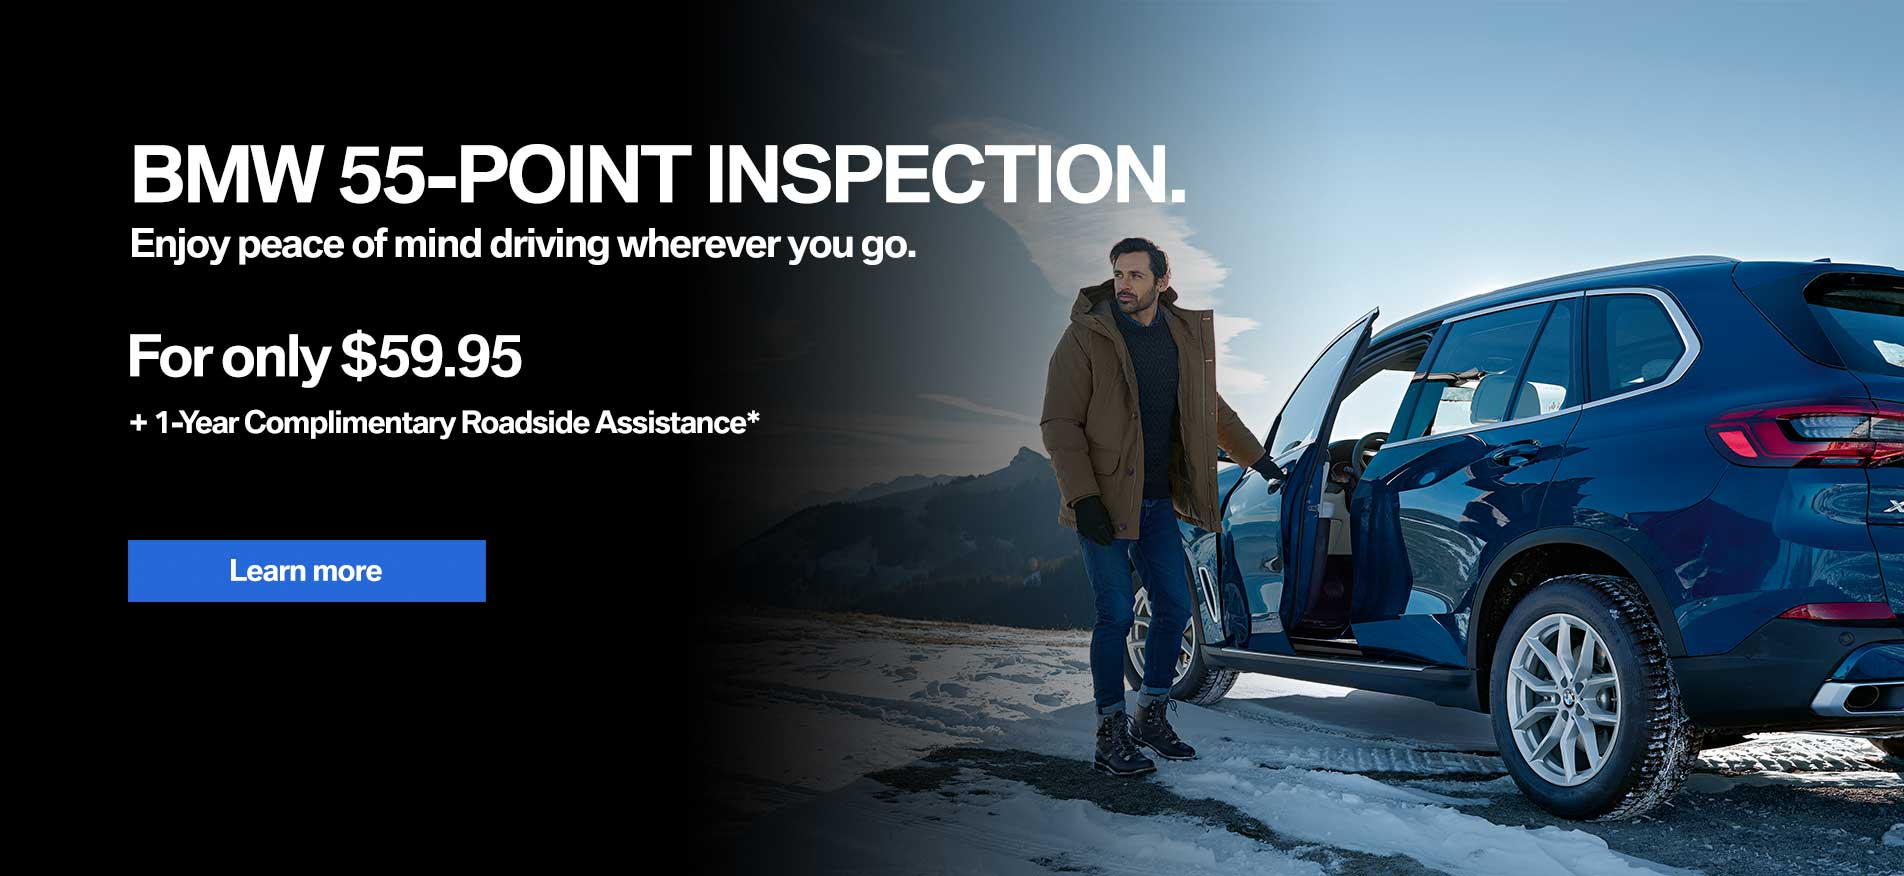 Auto West BMW 55 Point Inspection Winter 2019